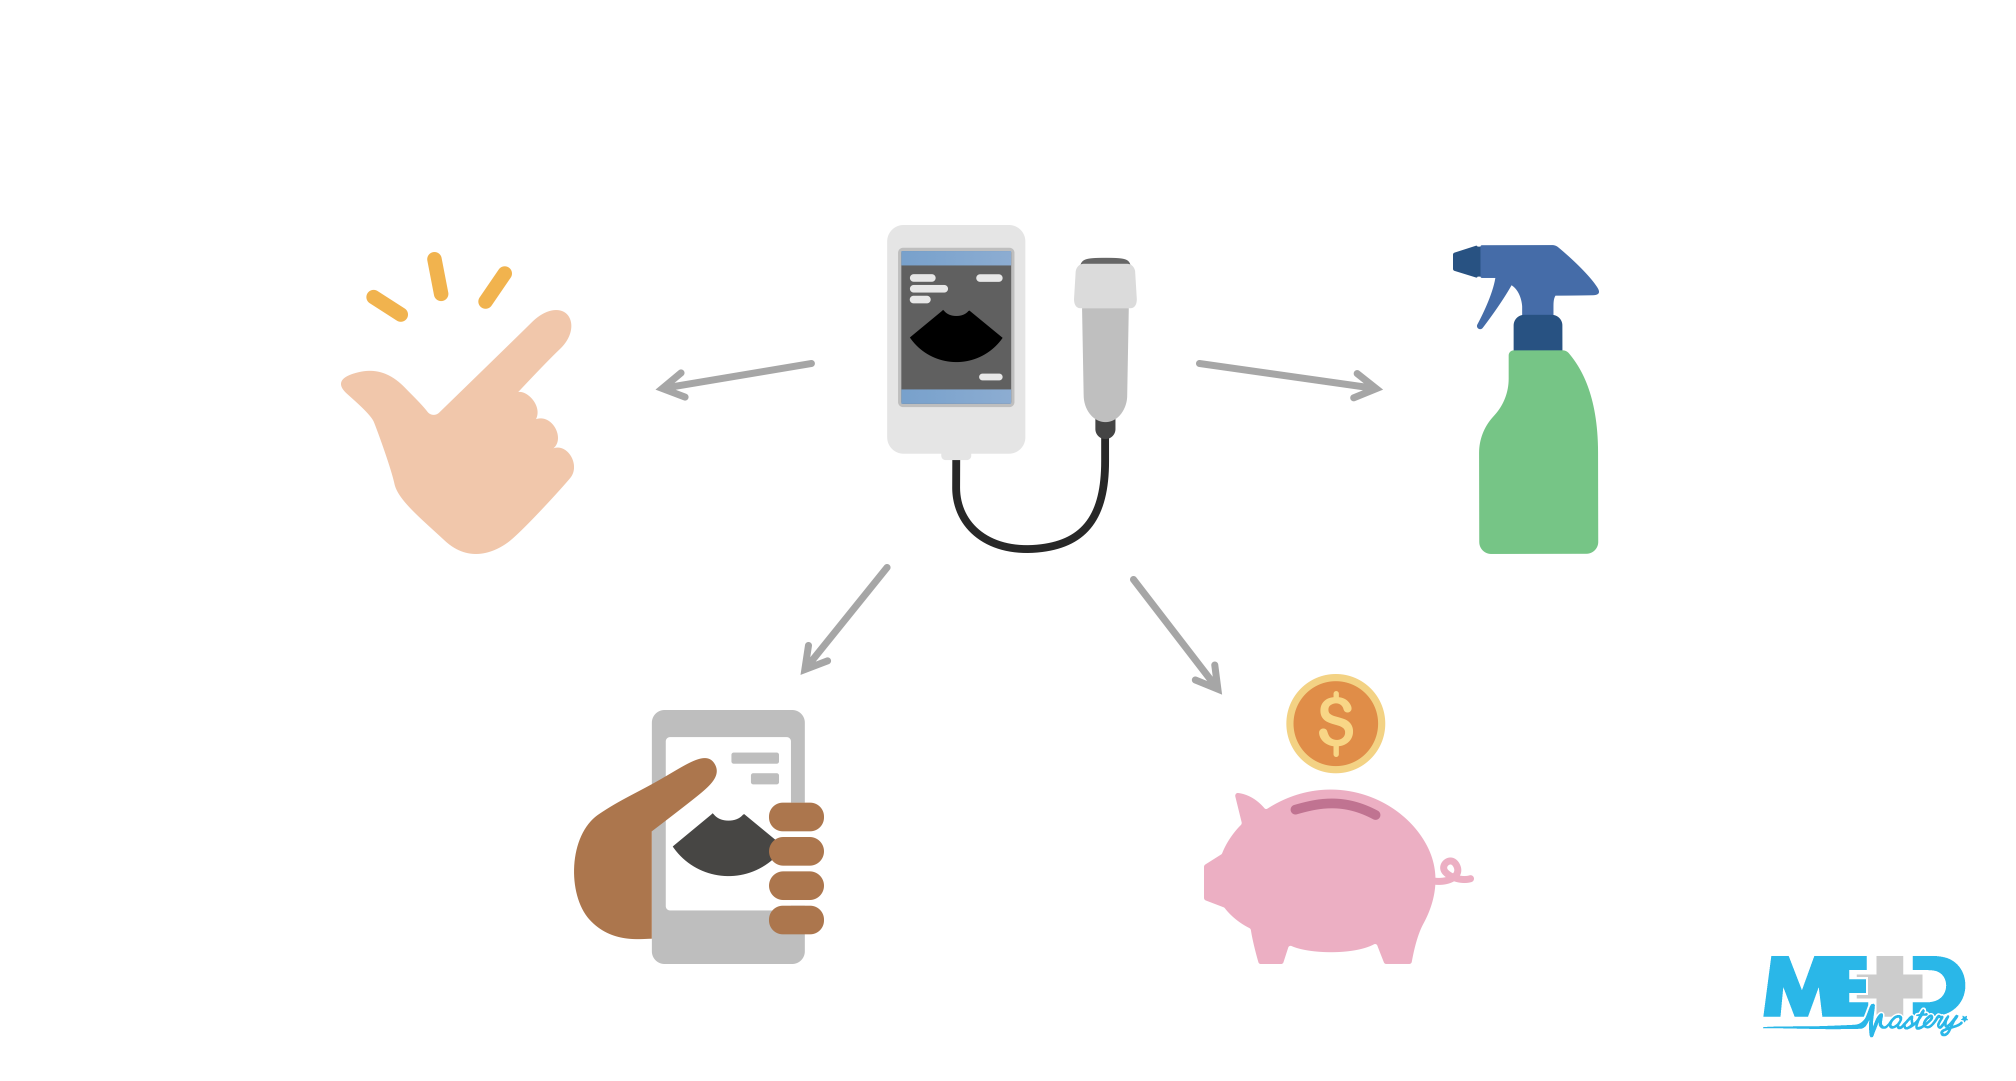 Multi-component illustration of handheld ultrasound device with arrows pointing to hand snapping fingers, portable device displaying echocardiogram, piggy bank, and spray bottle.